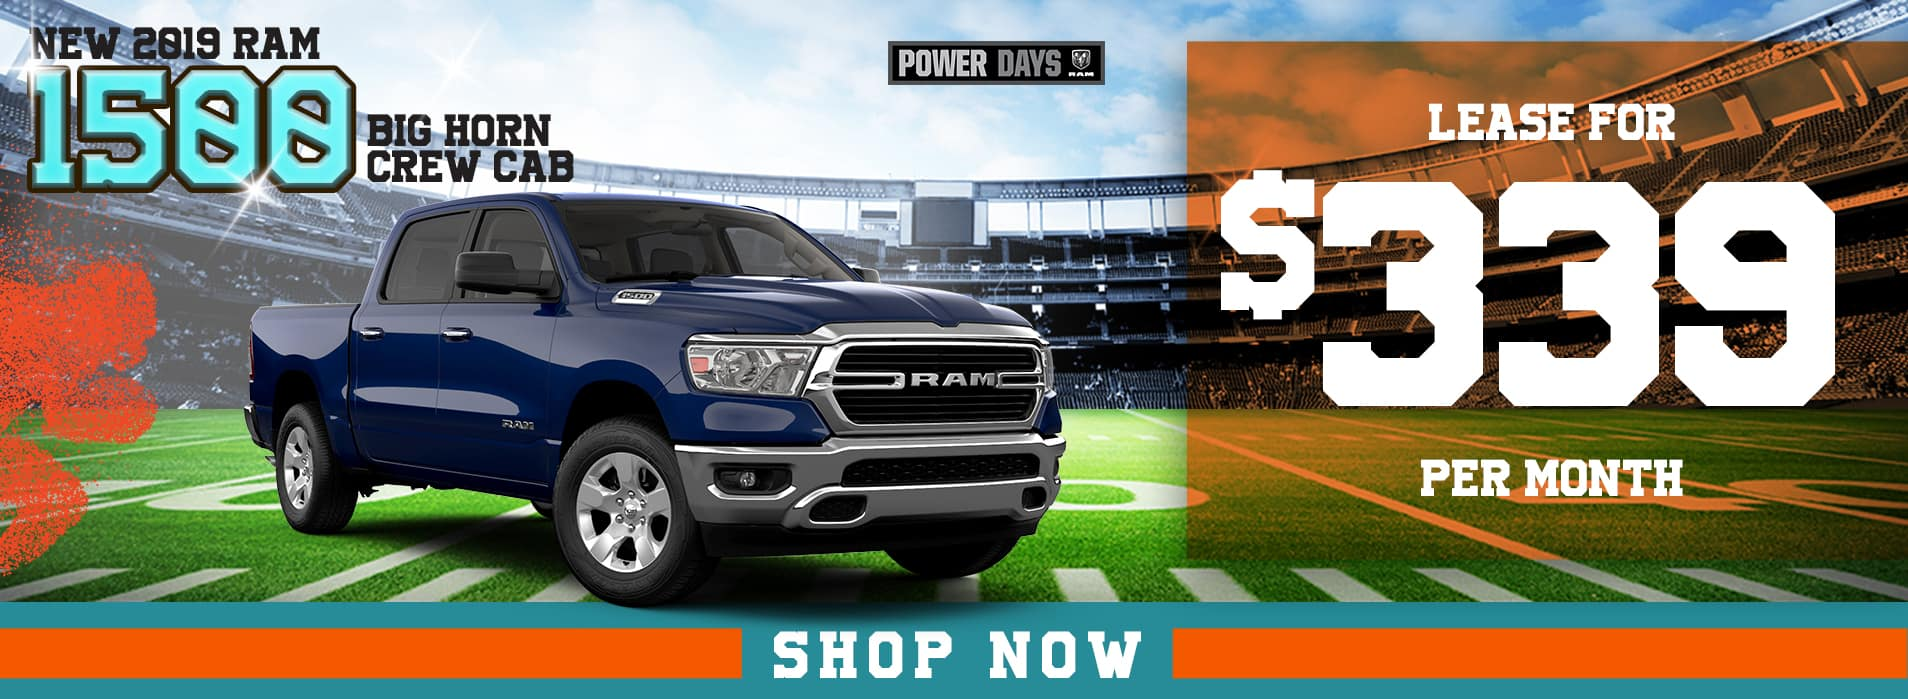 RAM 1500 Big Horn | Lease for $339 per month